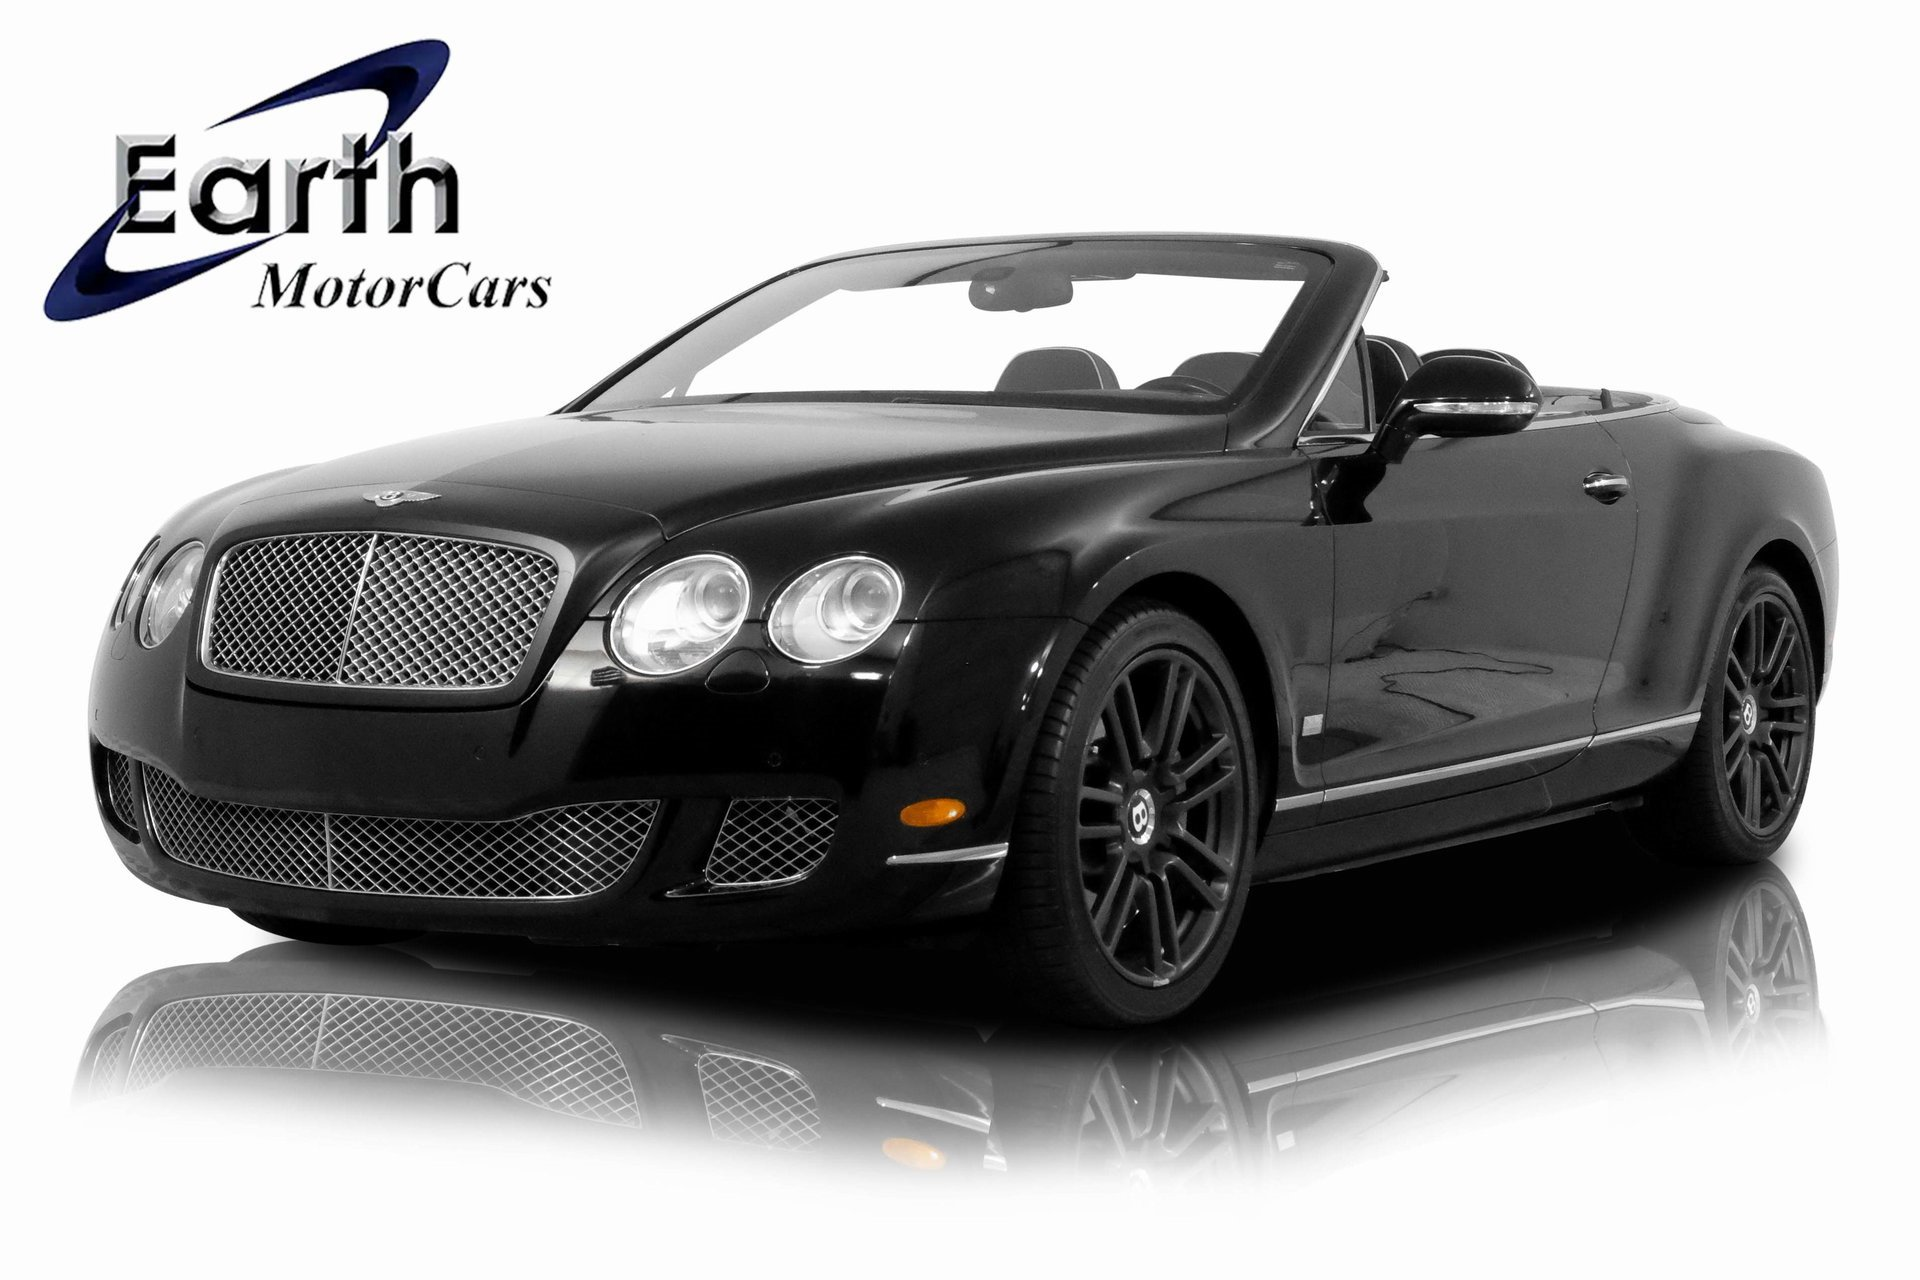 2011 Bentley Continental GTC Convertible image